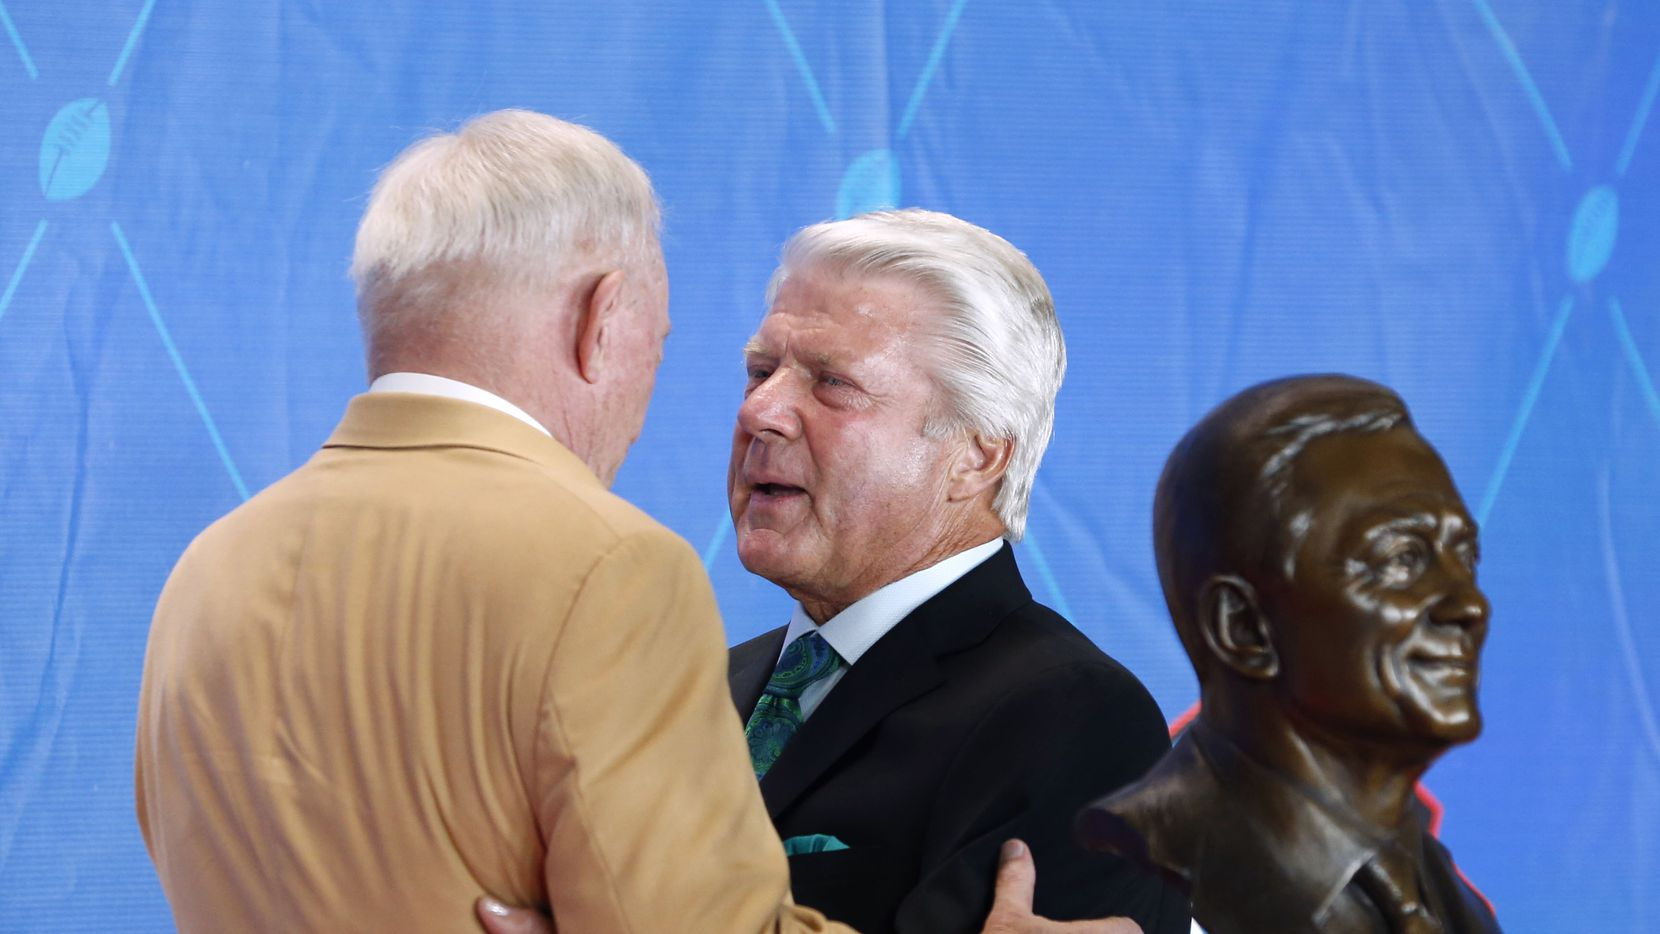 Former Dallas Cowboys head coach Jimmy Johnson talks with 2017 Pro Football Hall of Fame inductee and Dallas Cowboys owner and general manager Jerry Jones at the 2017 Pro Football Hall of Fame Enshrinement Ceremony at Tom Benson Stadium in Canton, Ohio on Saturday, August 6, 2017.